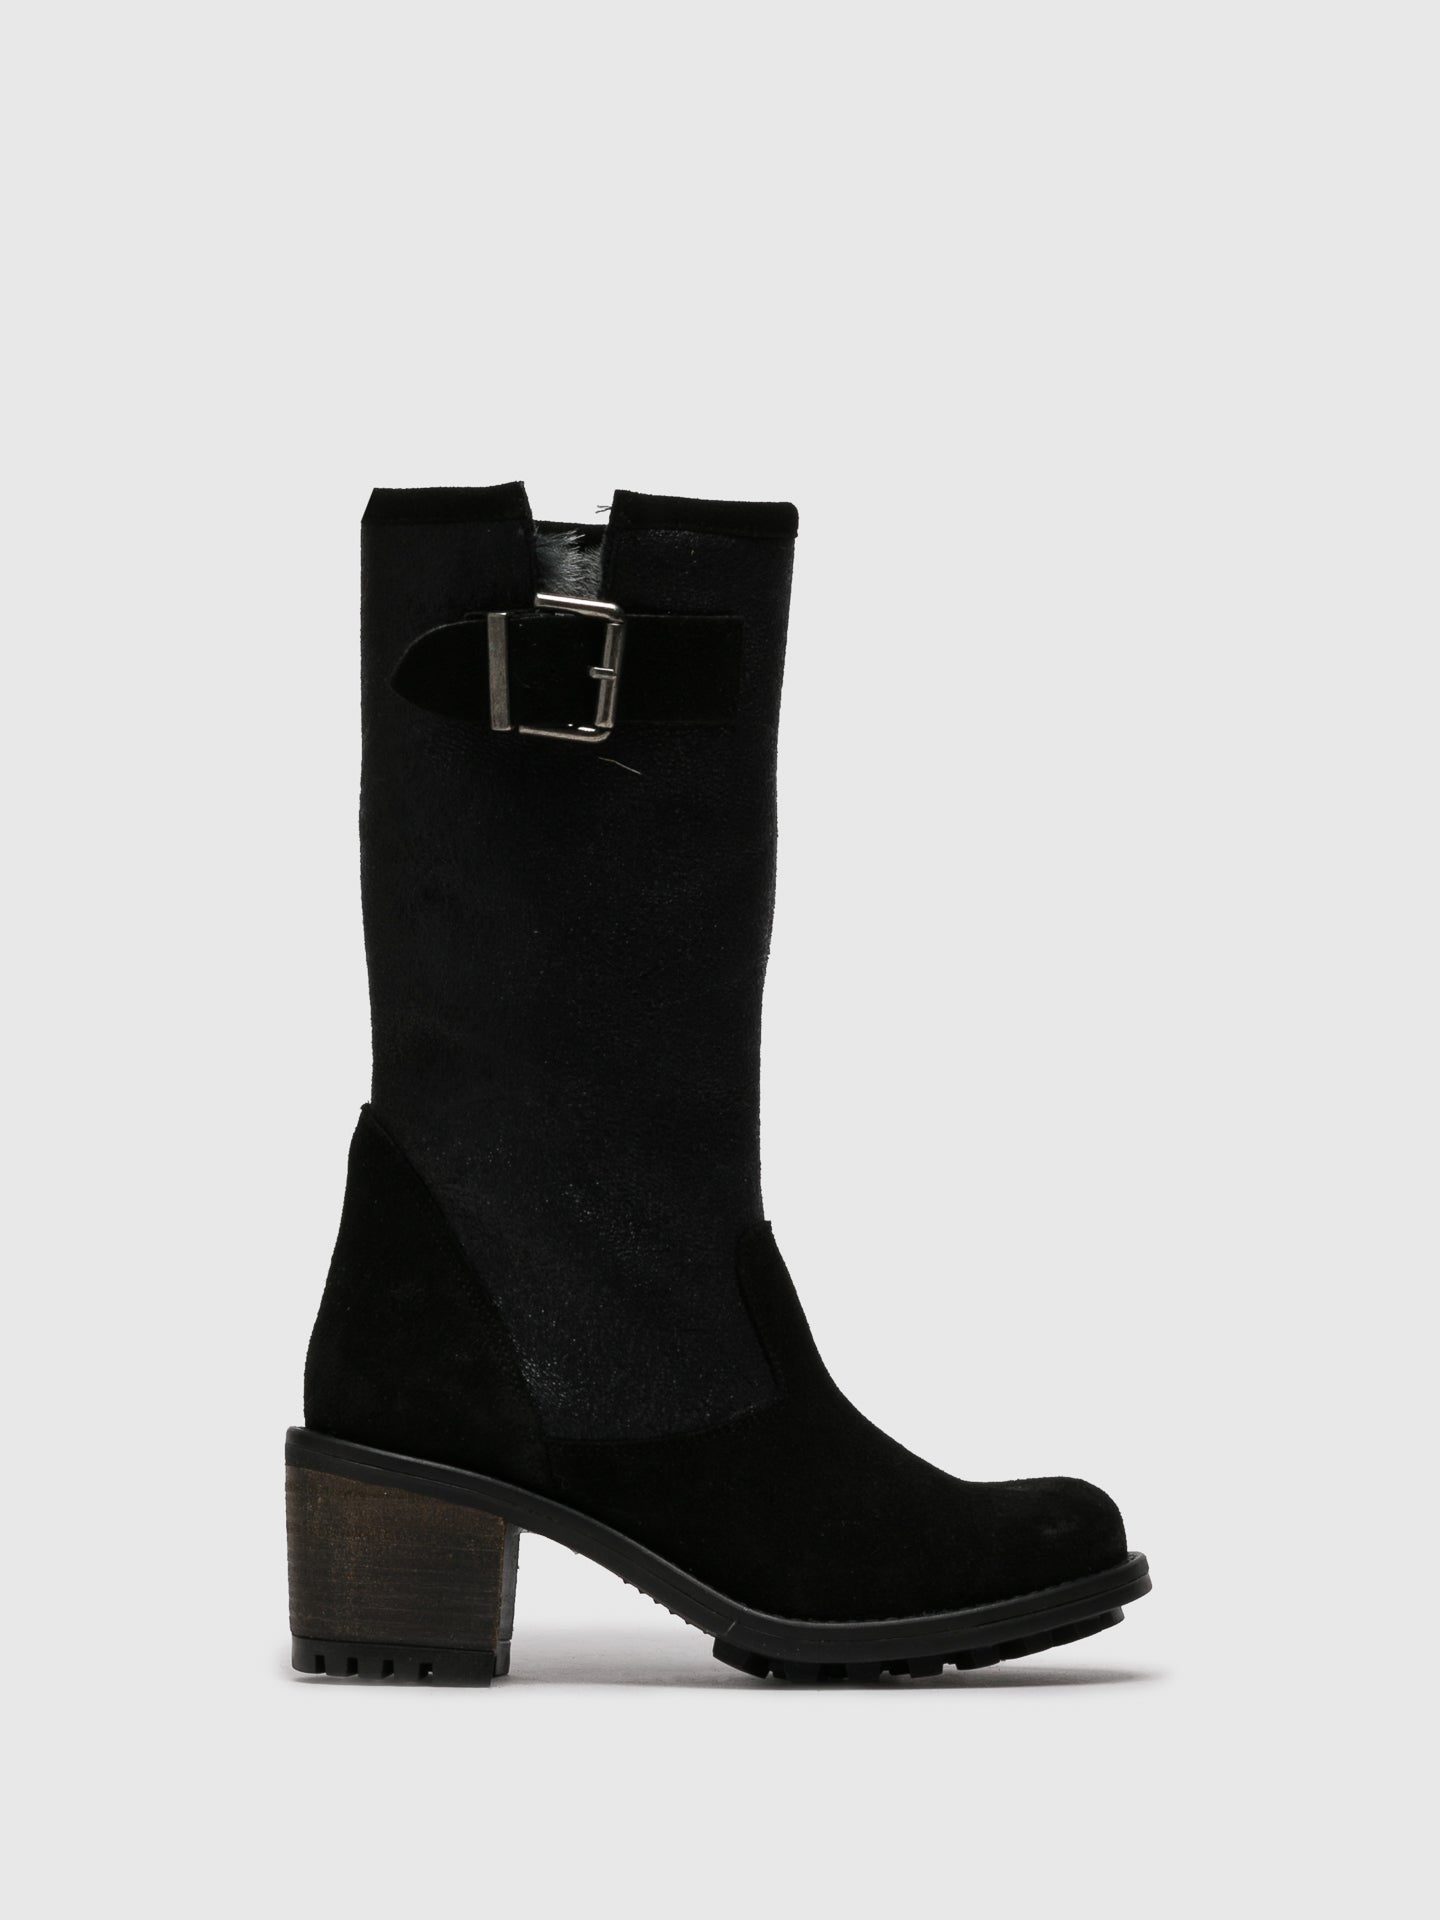 Sotoalto Black Buckle Boots